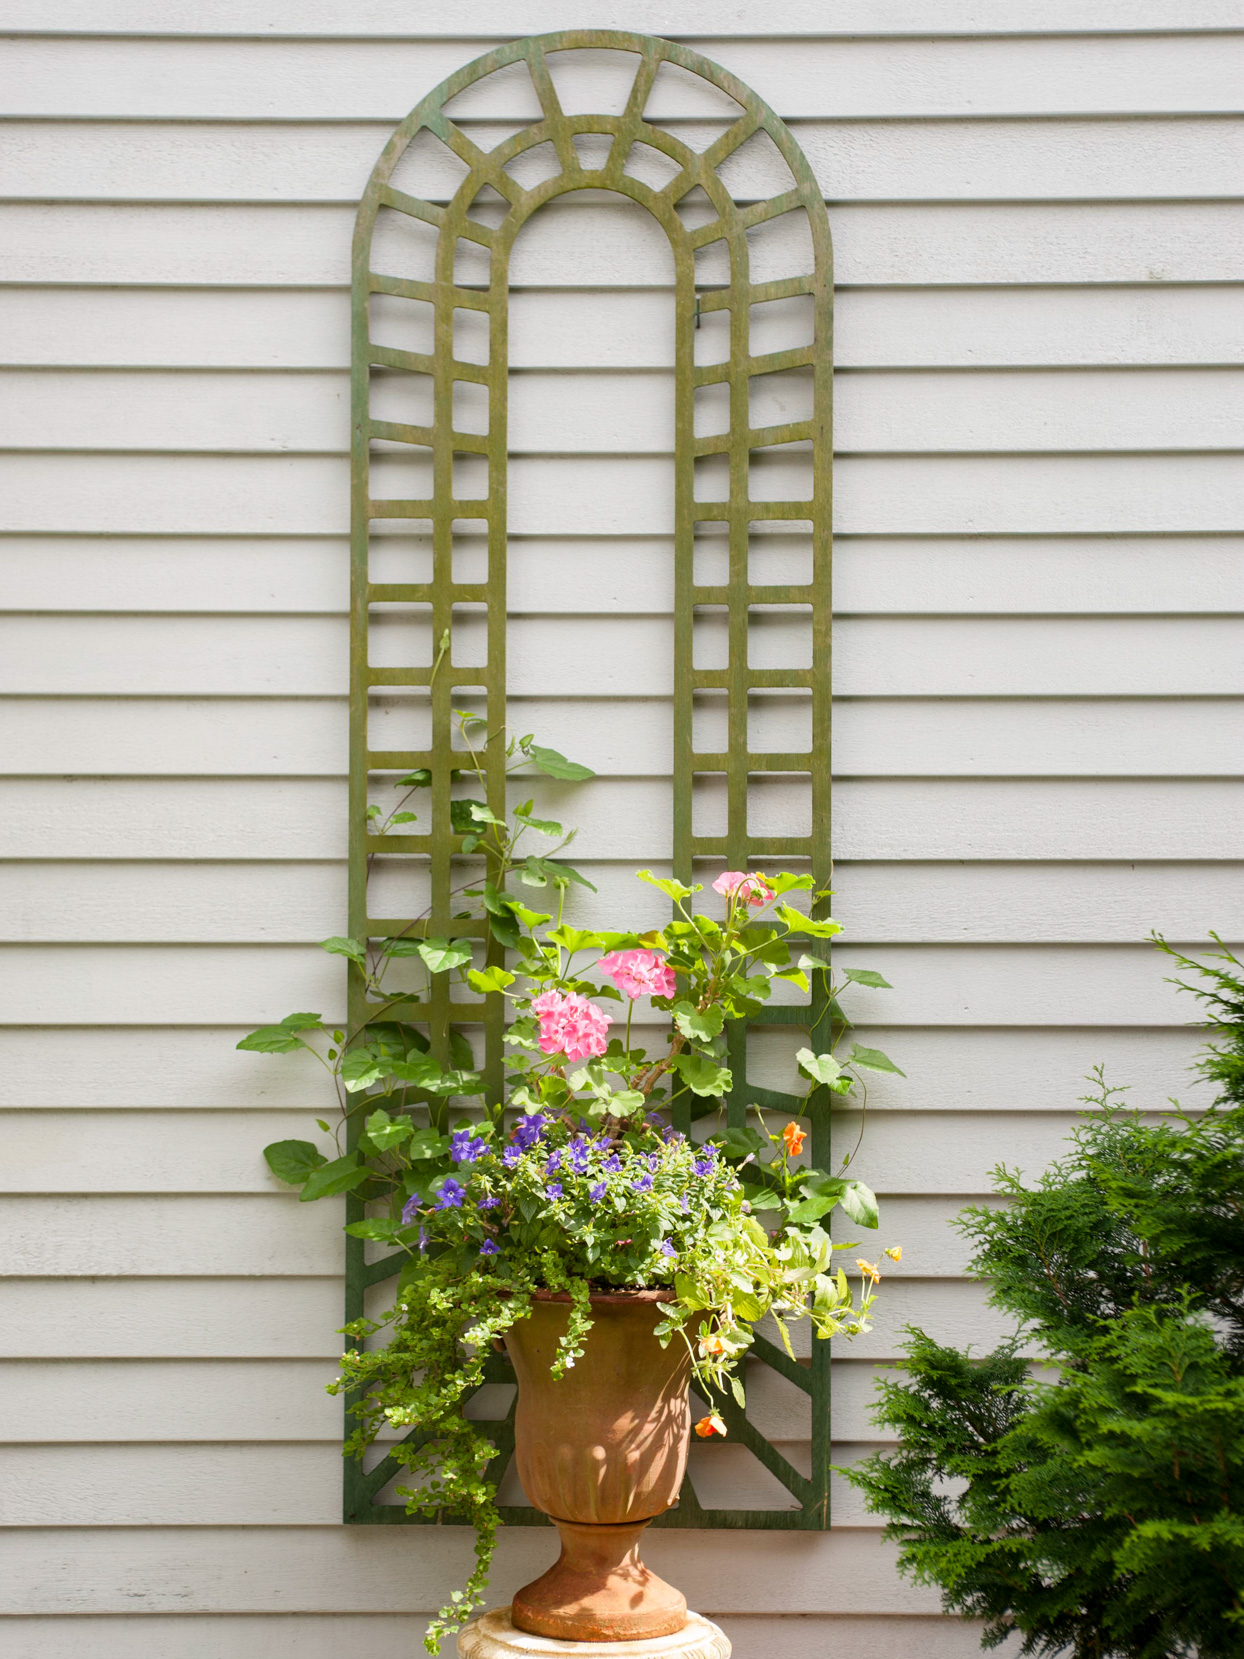 Custom Wall-Mount Trellis Ideas